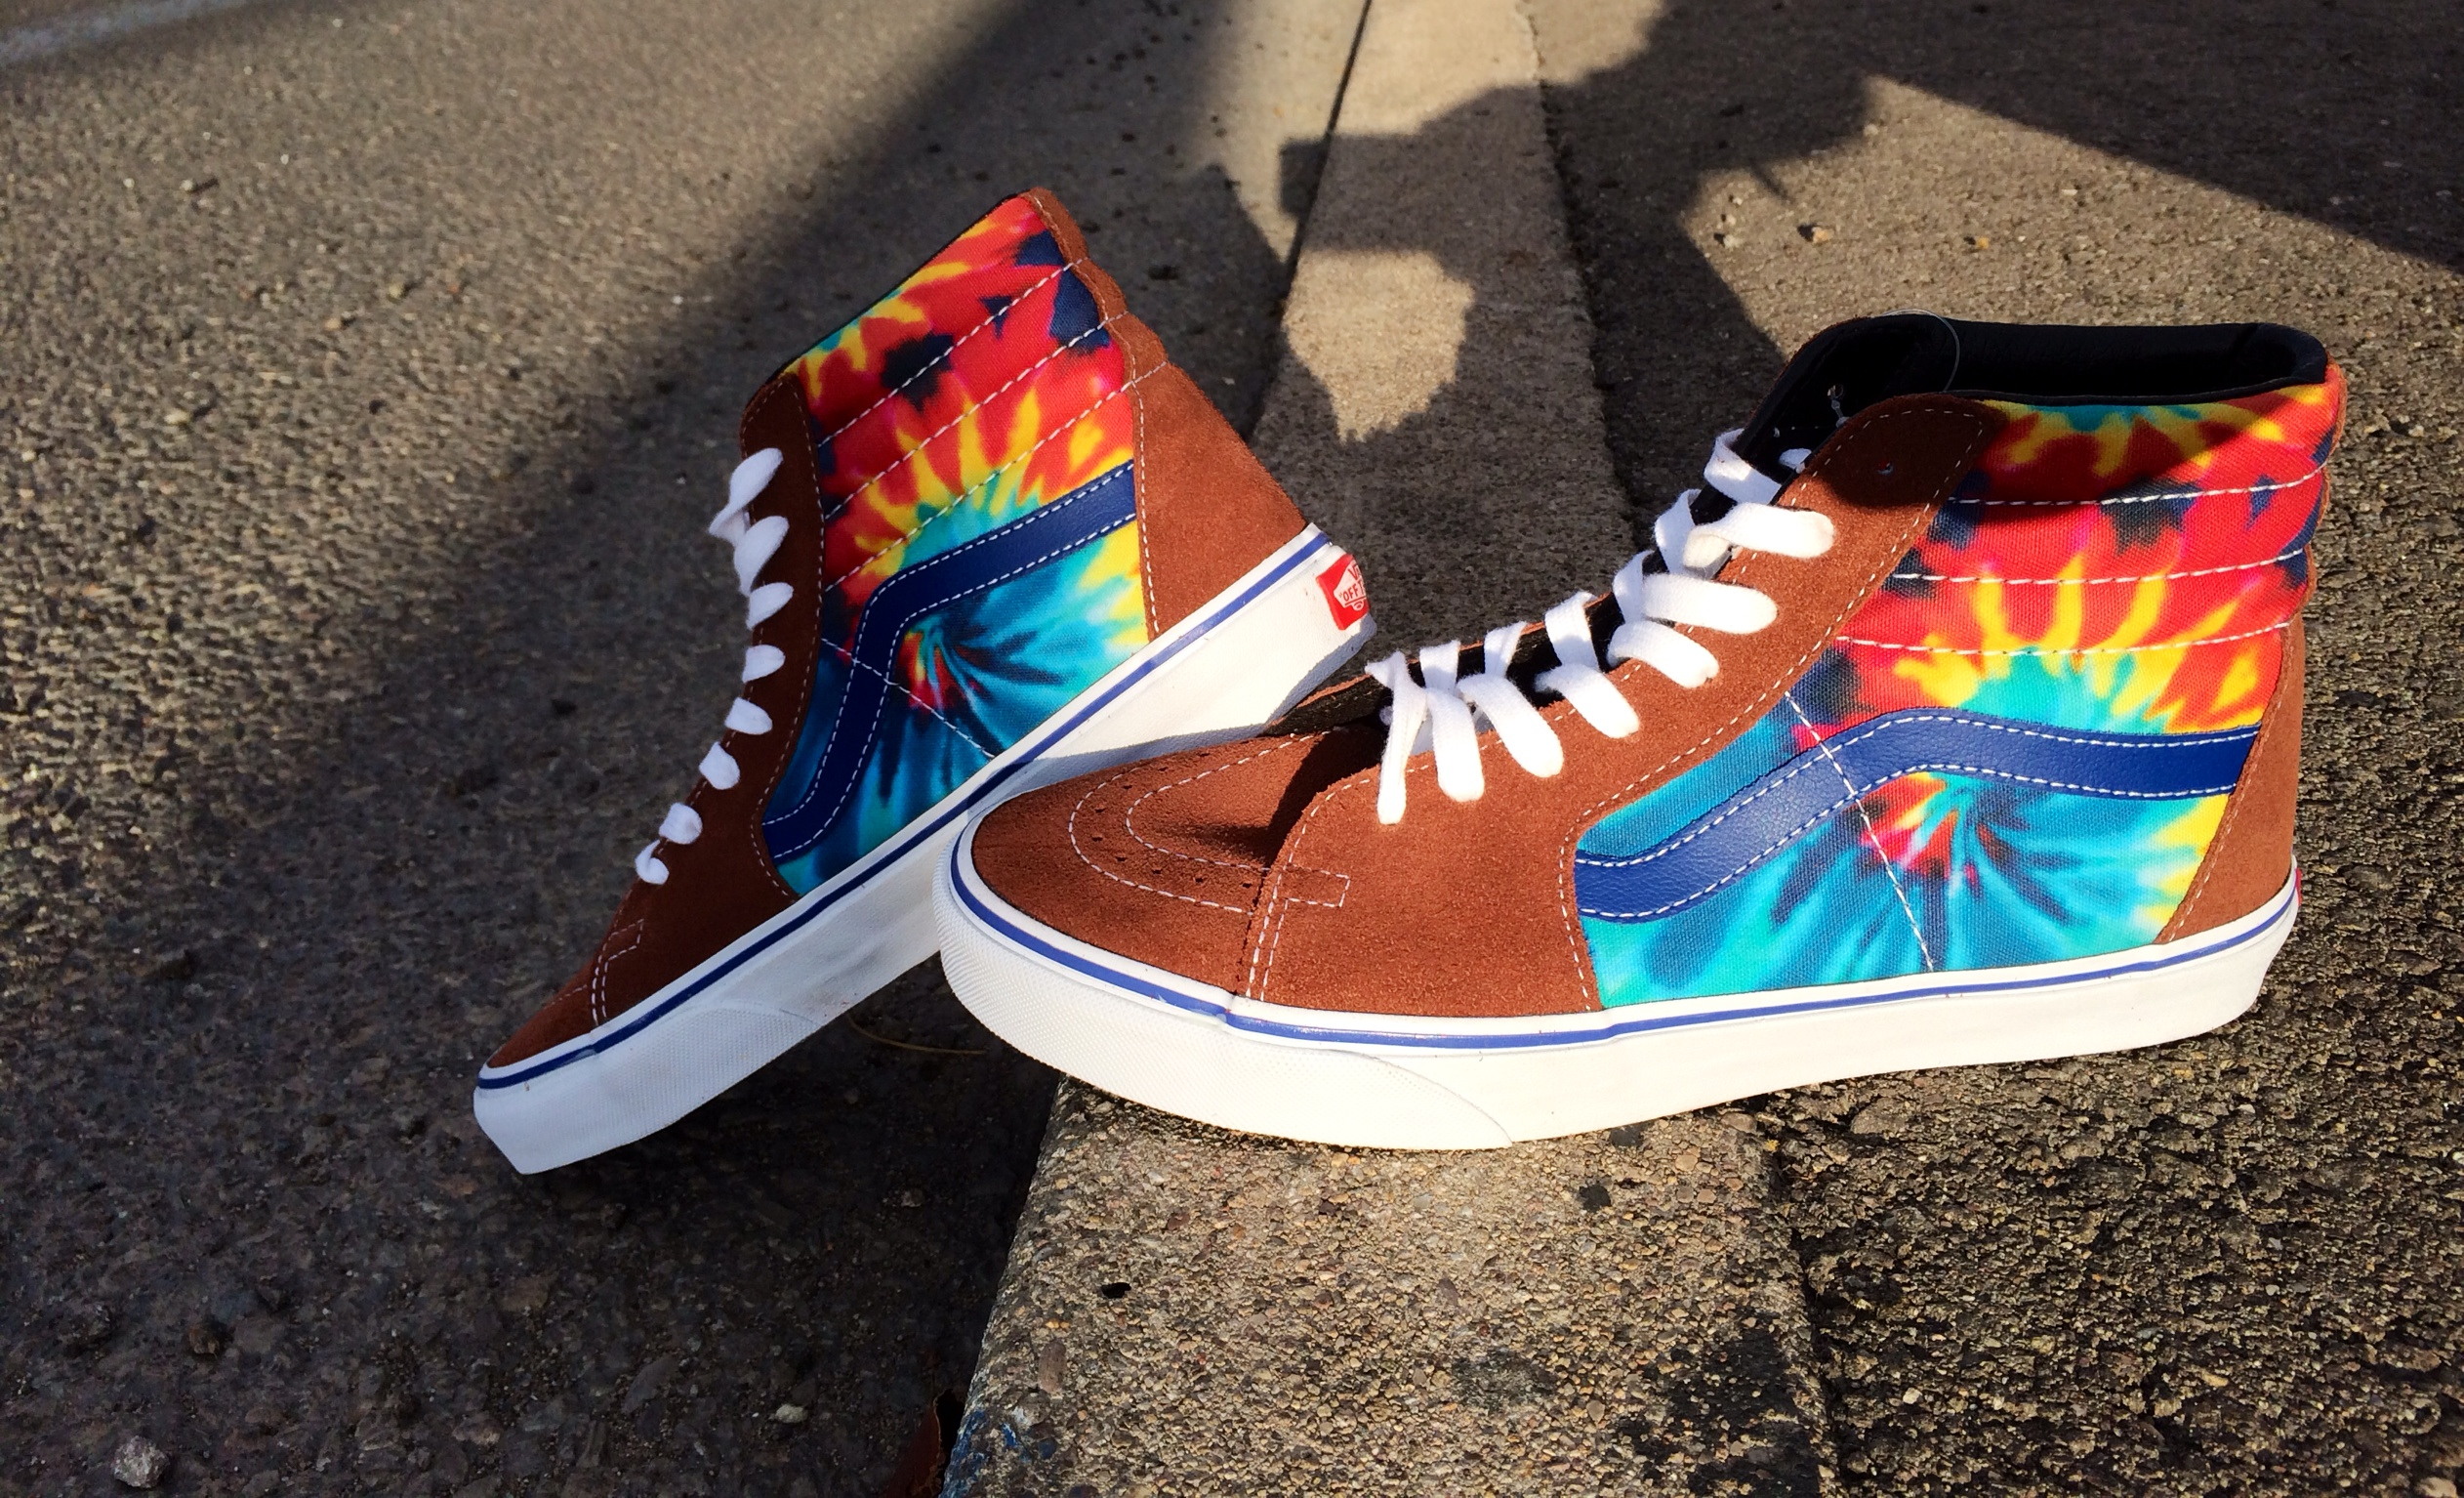 We got the perfect way to turn heads   get you noticed.. ITEM  THE SPRING  2014 VANS SK8 Hi ... bb033203d3bb